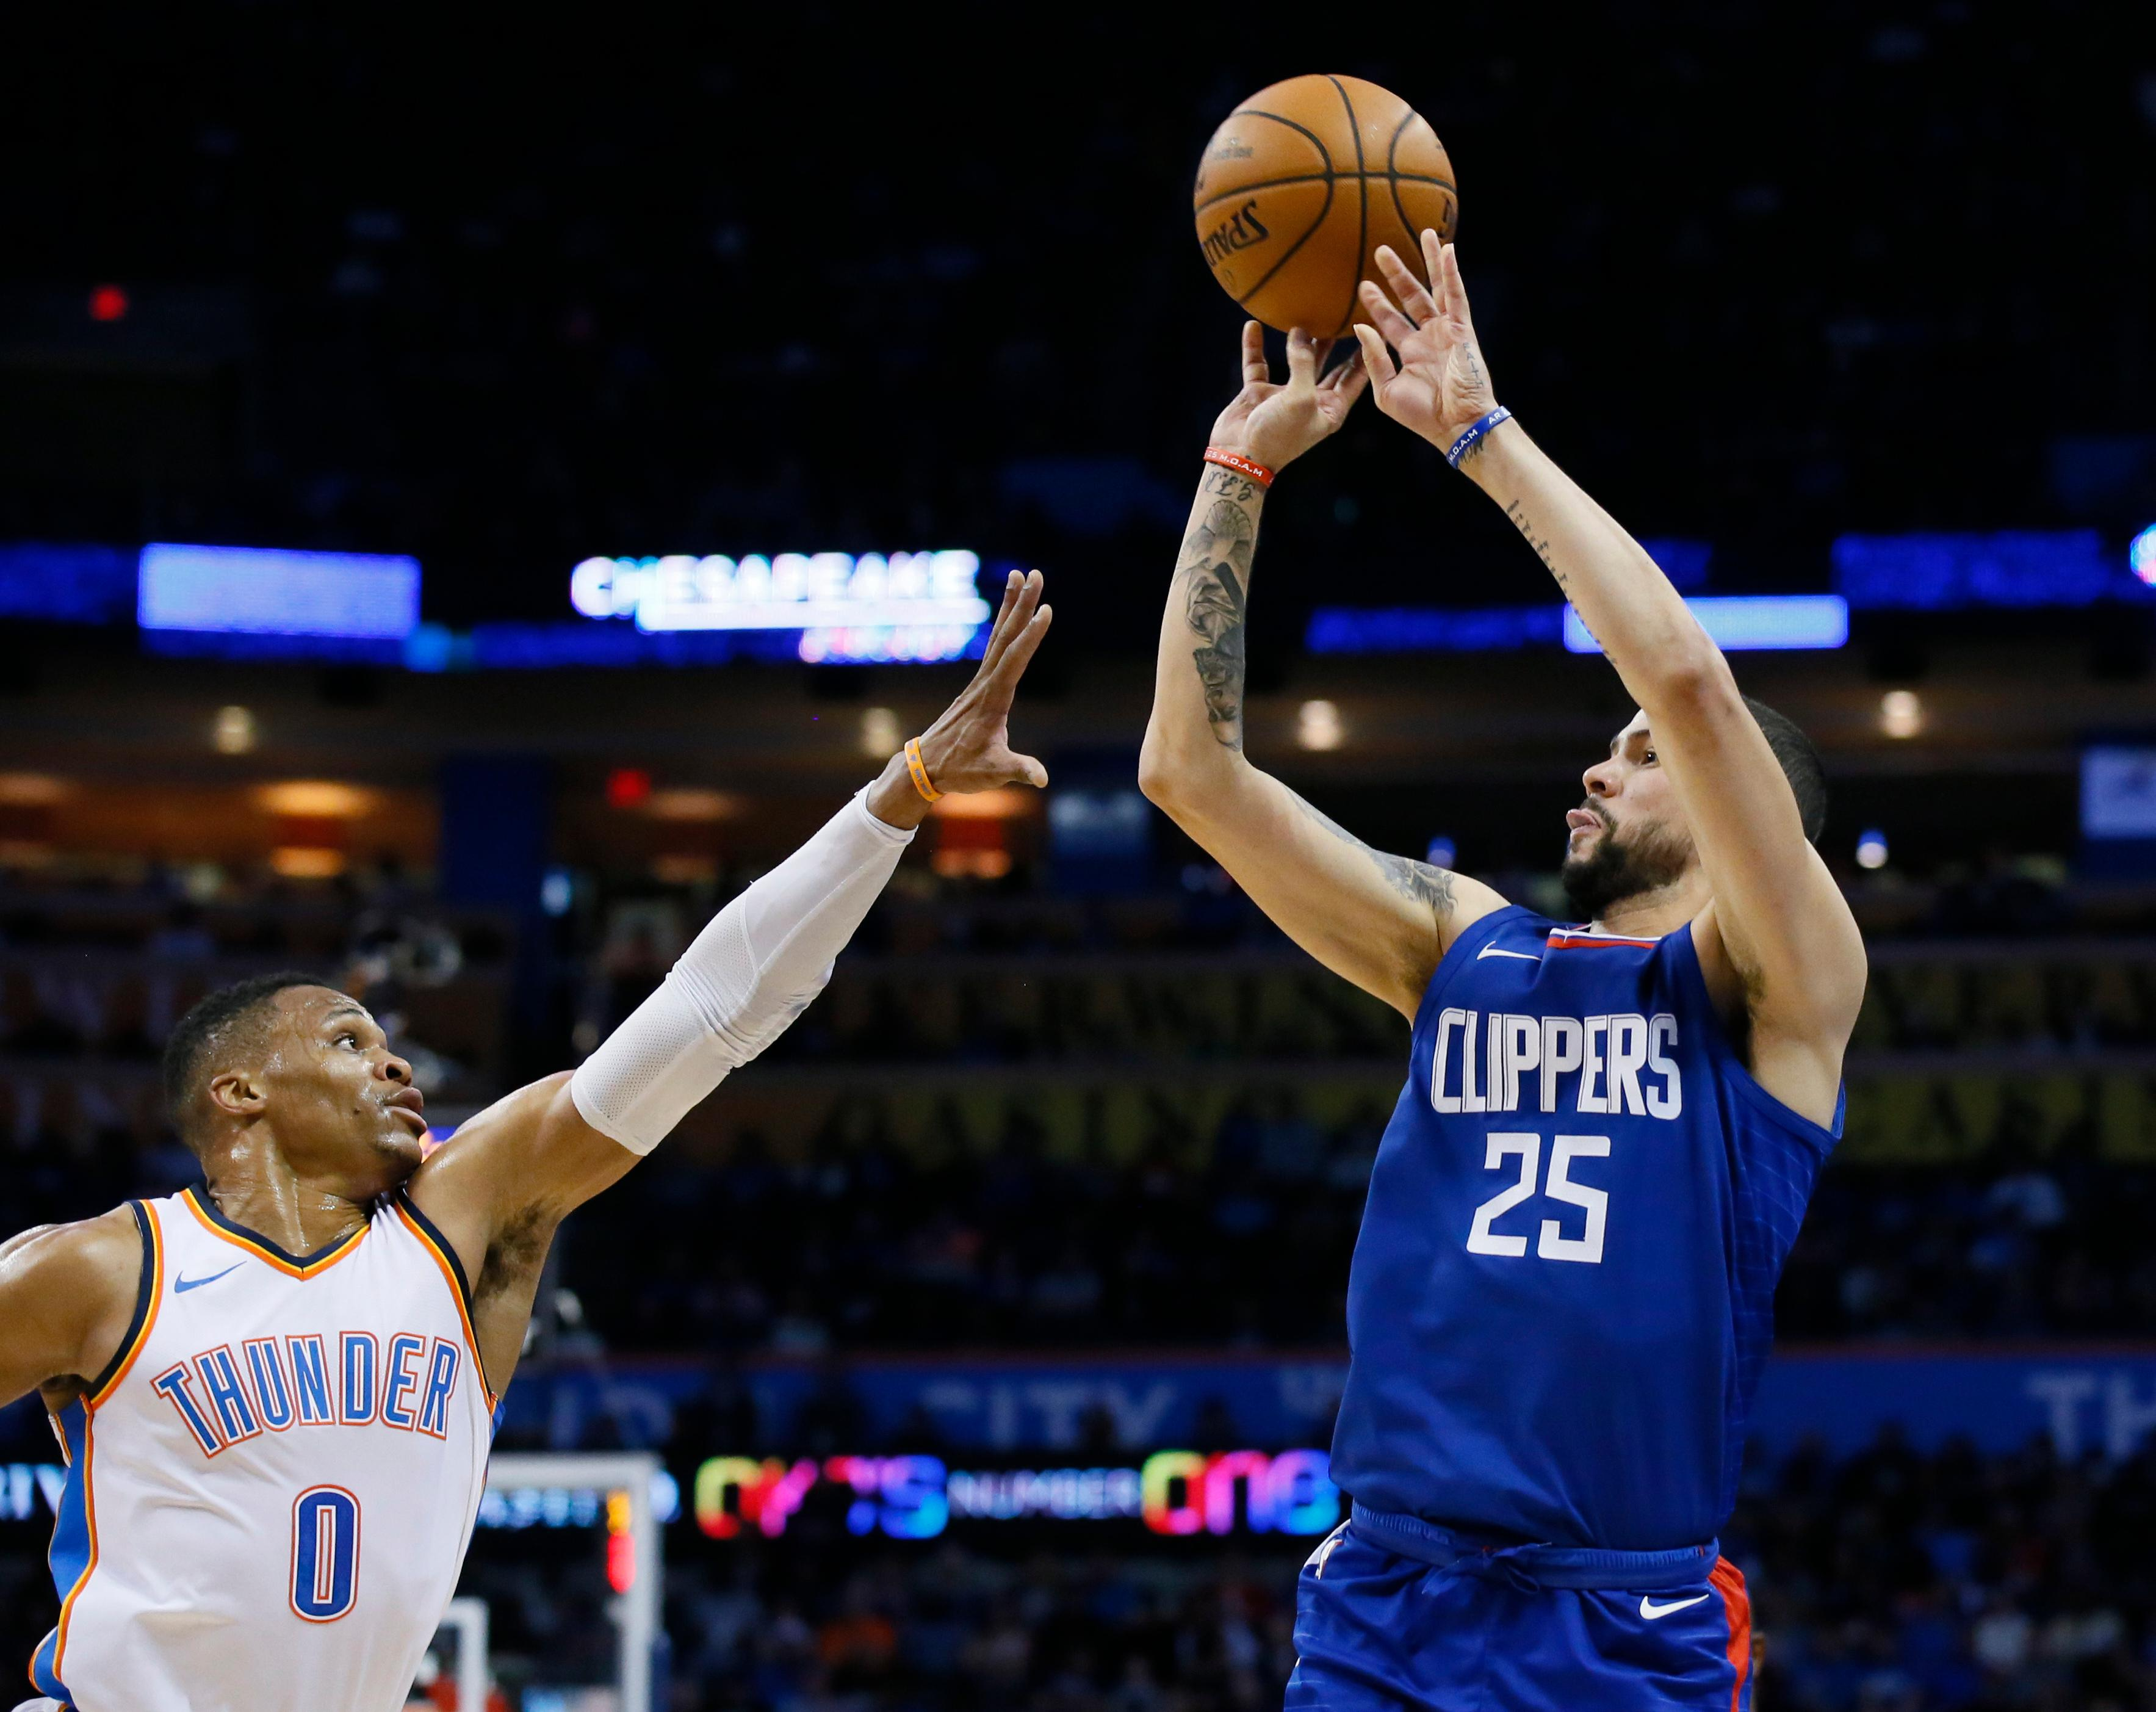 Los Angeles Clippers guard Austin Rivers (25) shoots as Oklahoma City Thunder guard Russell Westbrook (0) defends in the first quarter of an NBA basketball game against the Los Angeles Clippers in Oklahoma City, Friday, Nov. 10, 2017. (AP Photo/Sue Ogrocki)